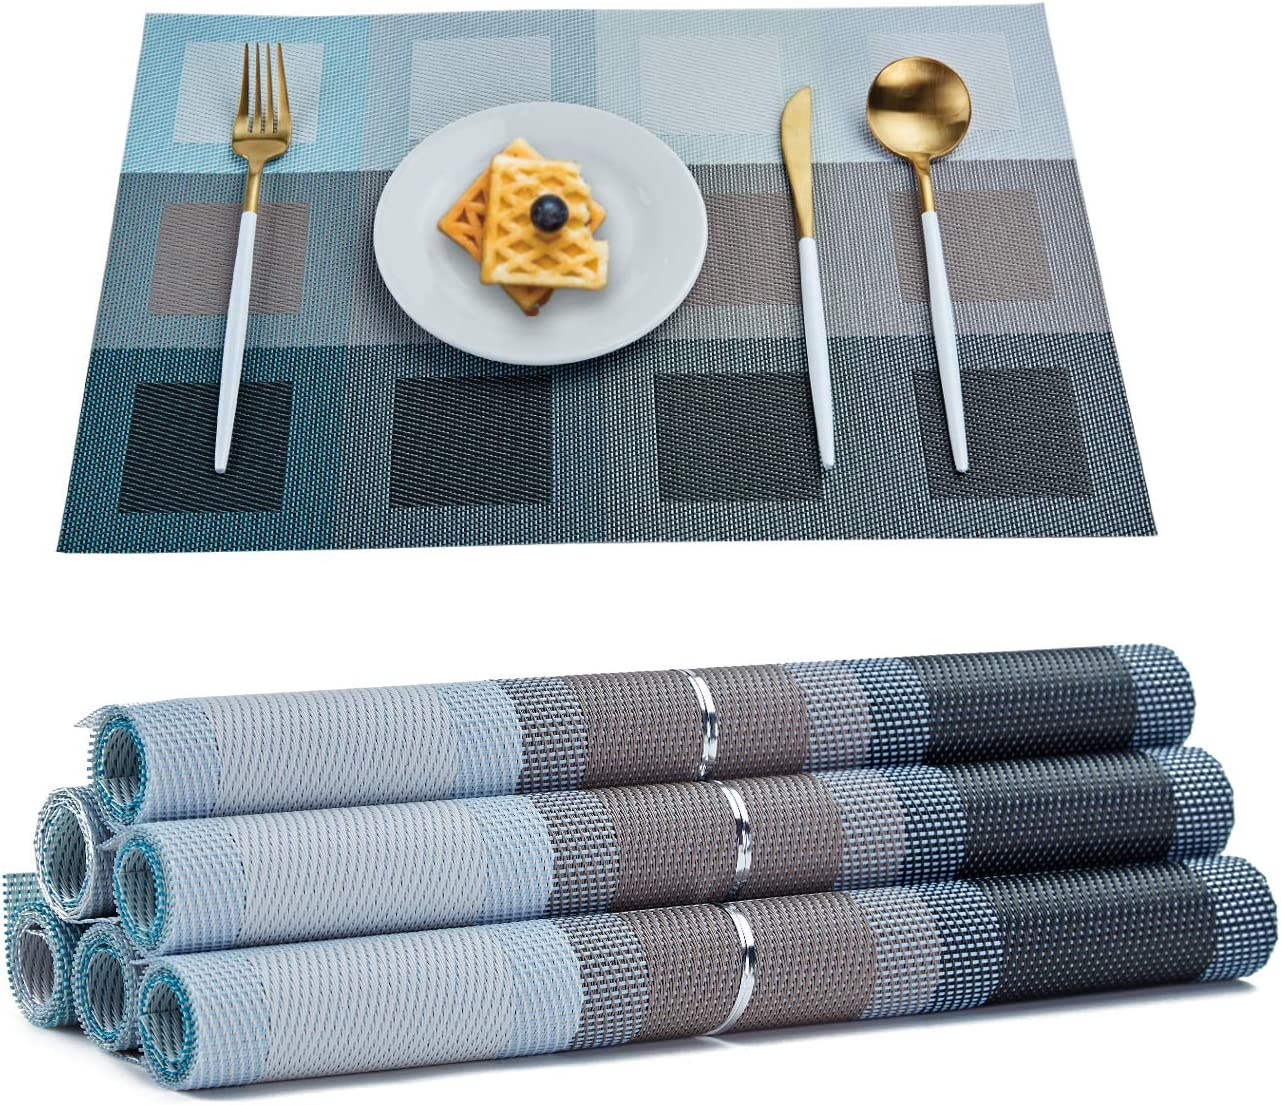 famibay Bamboo PVC Weave Placemats Non-Slip Kitchen Table Mats Set of 4-30x45 cm